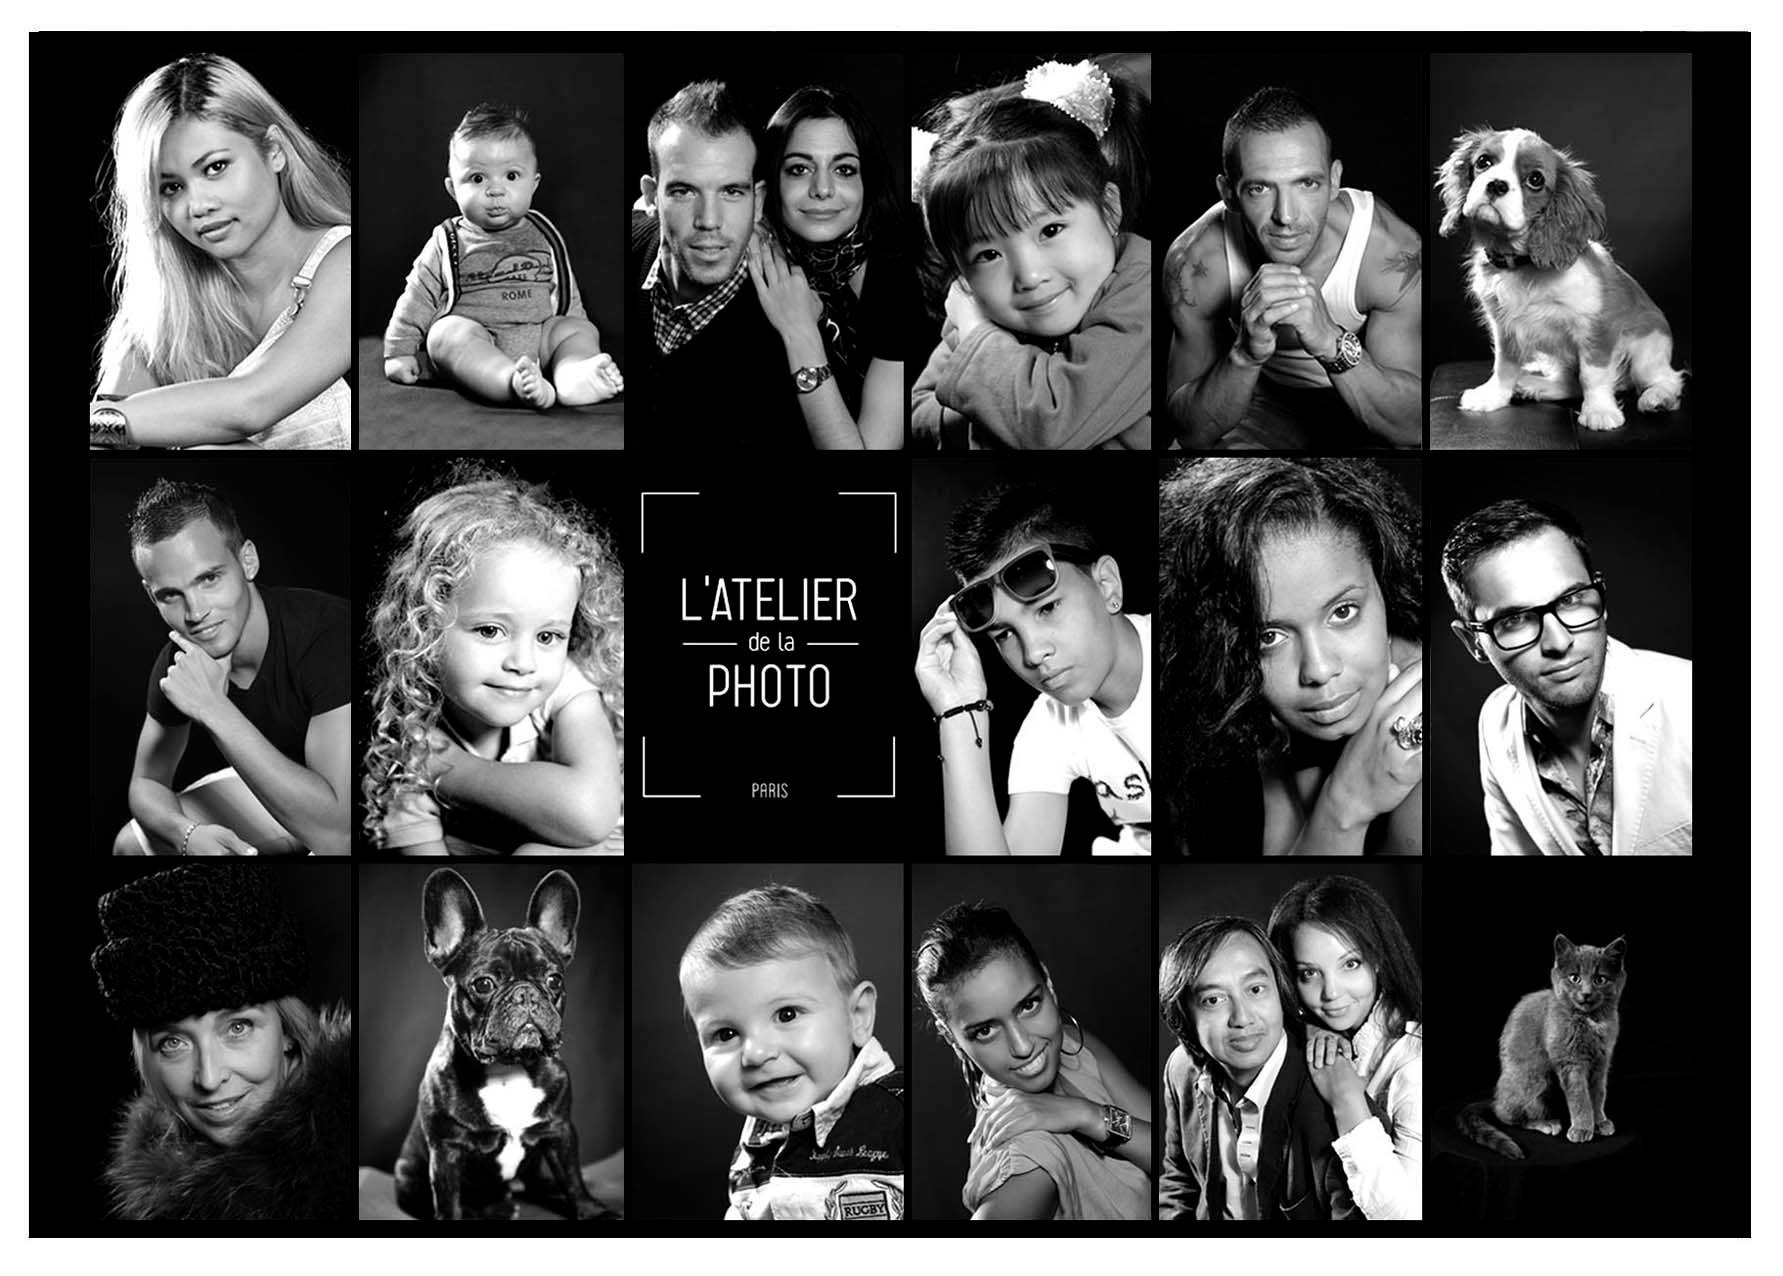 L'Atelier de la photo marais Paris Harcourt